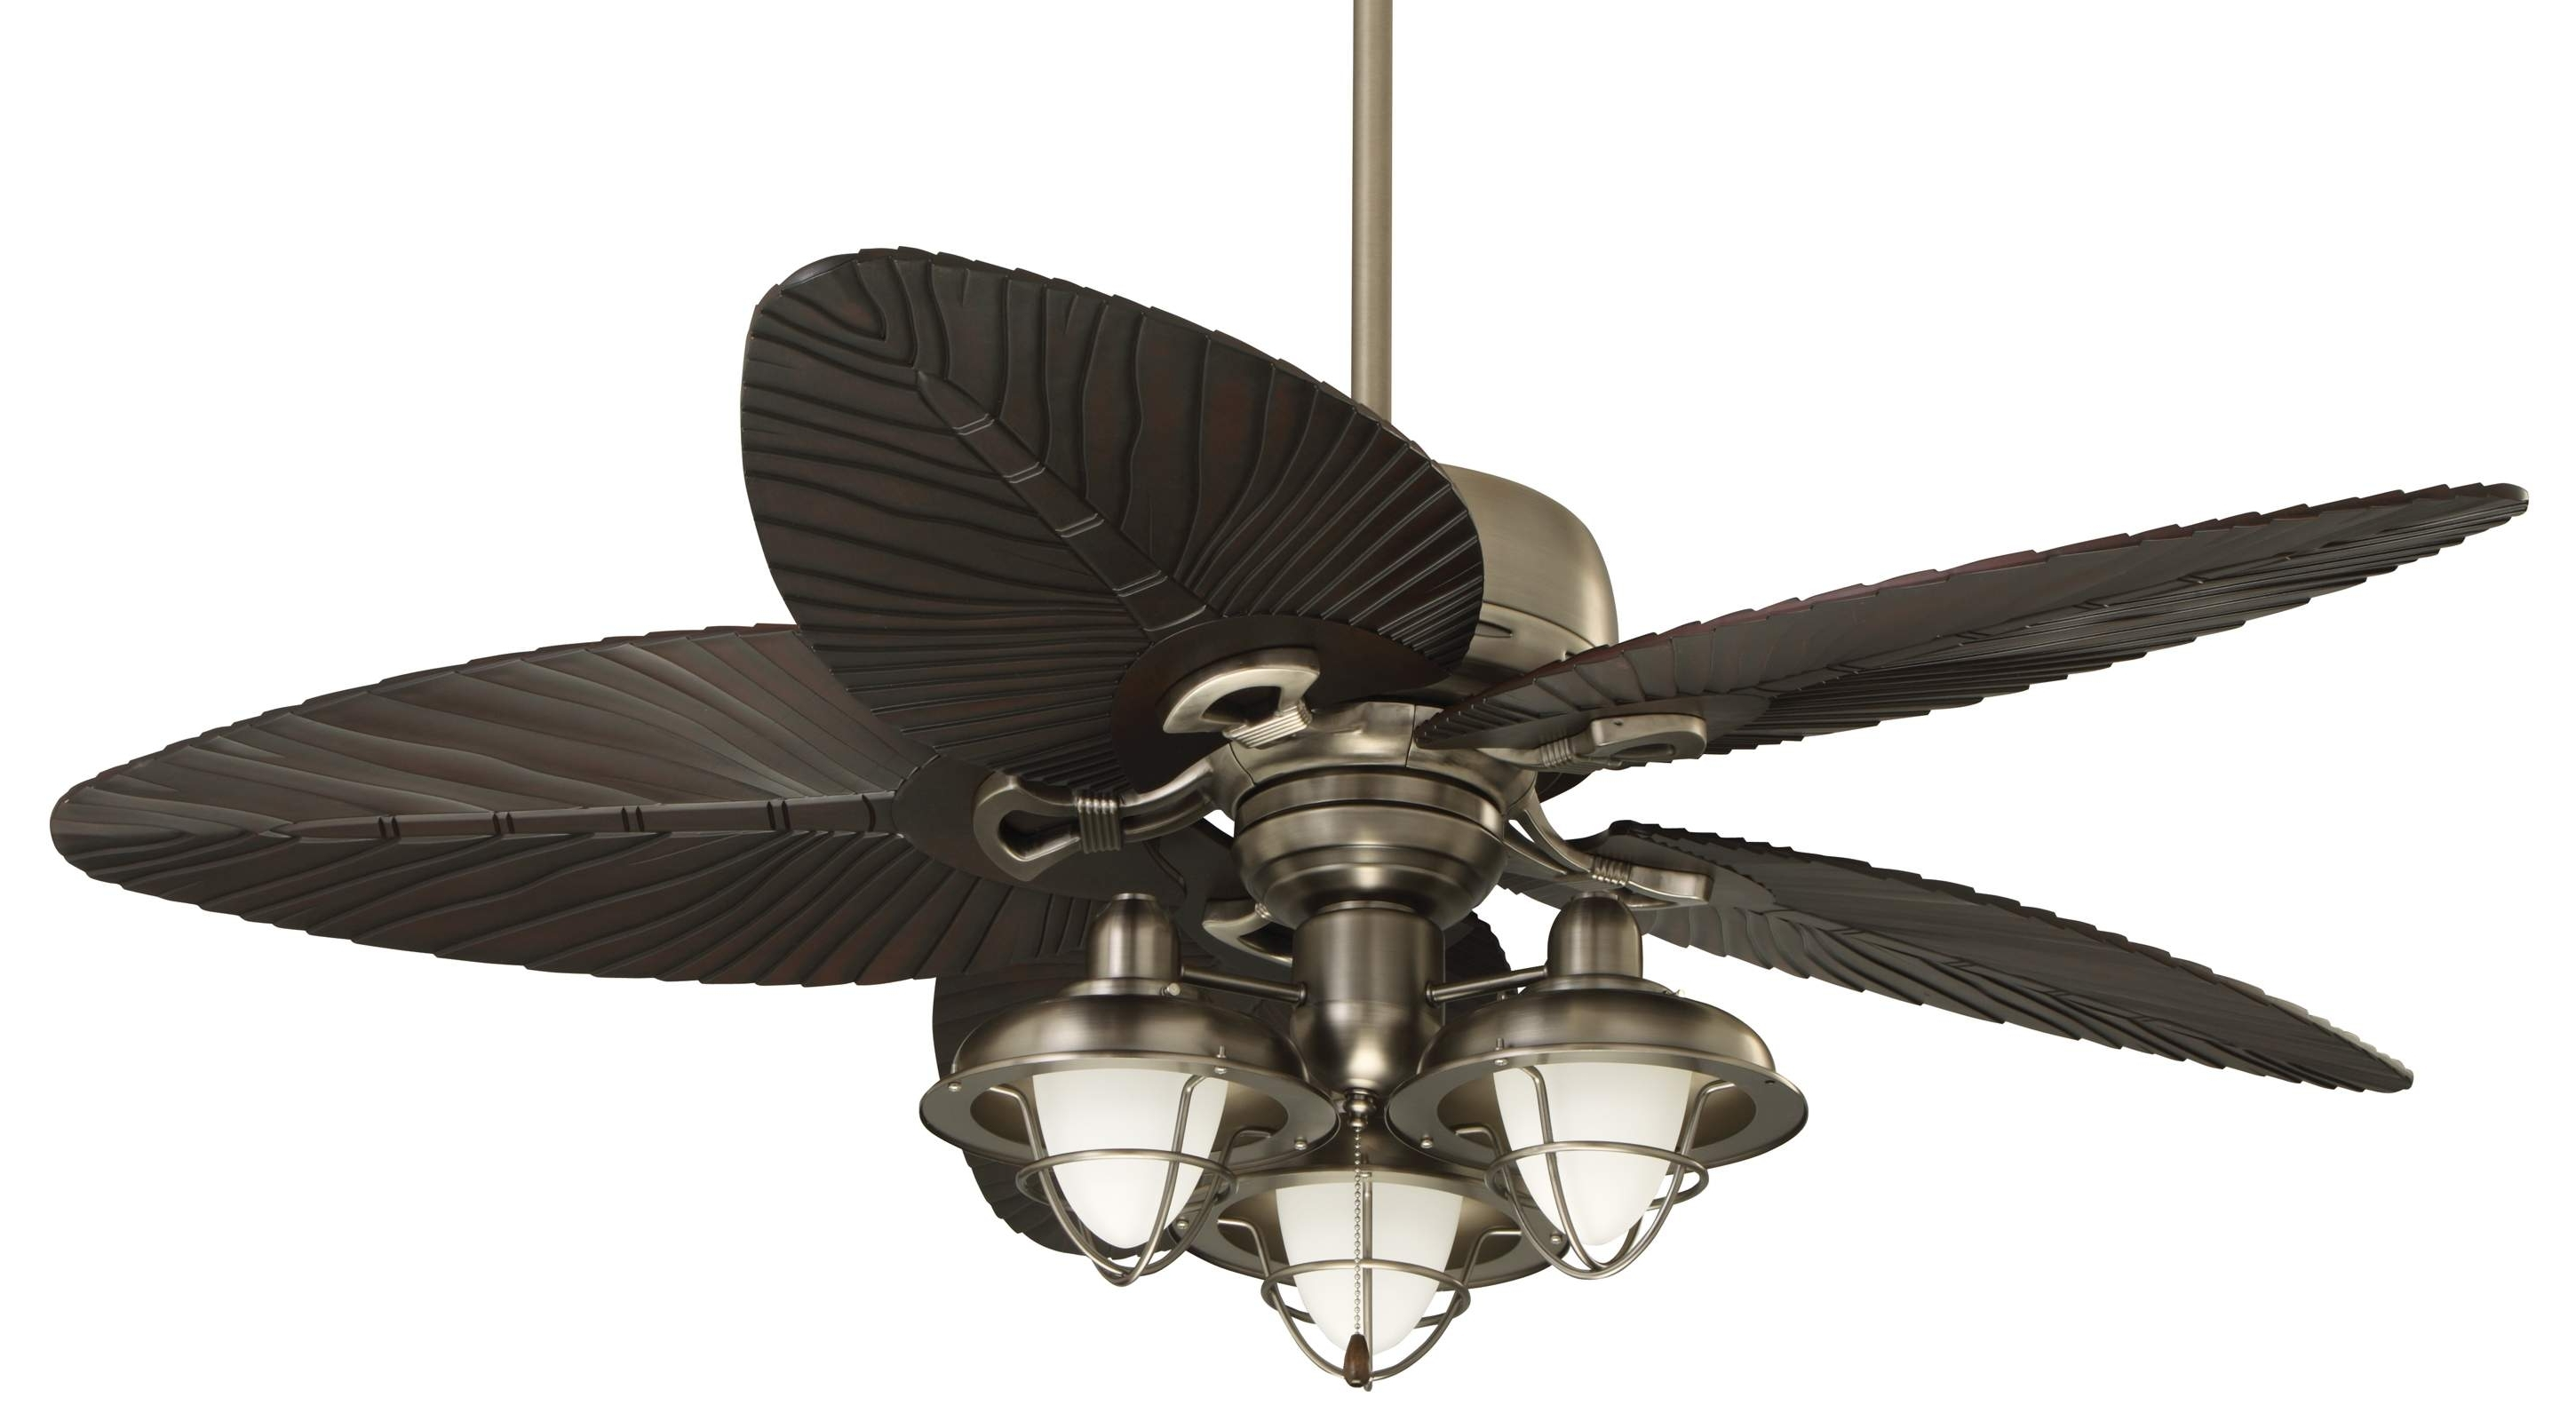 Latest Outdoor Ceiling Fans With Leaf Blades With Regard To Decor: Bring An Island Look Into Your Home With Cool Ceiling Fan (View 14 of 20)